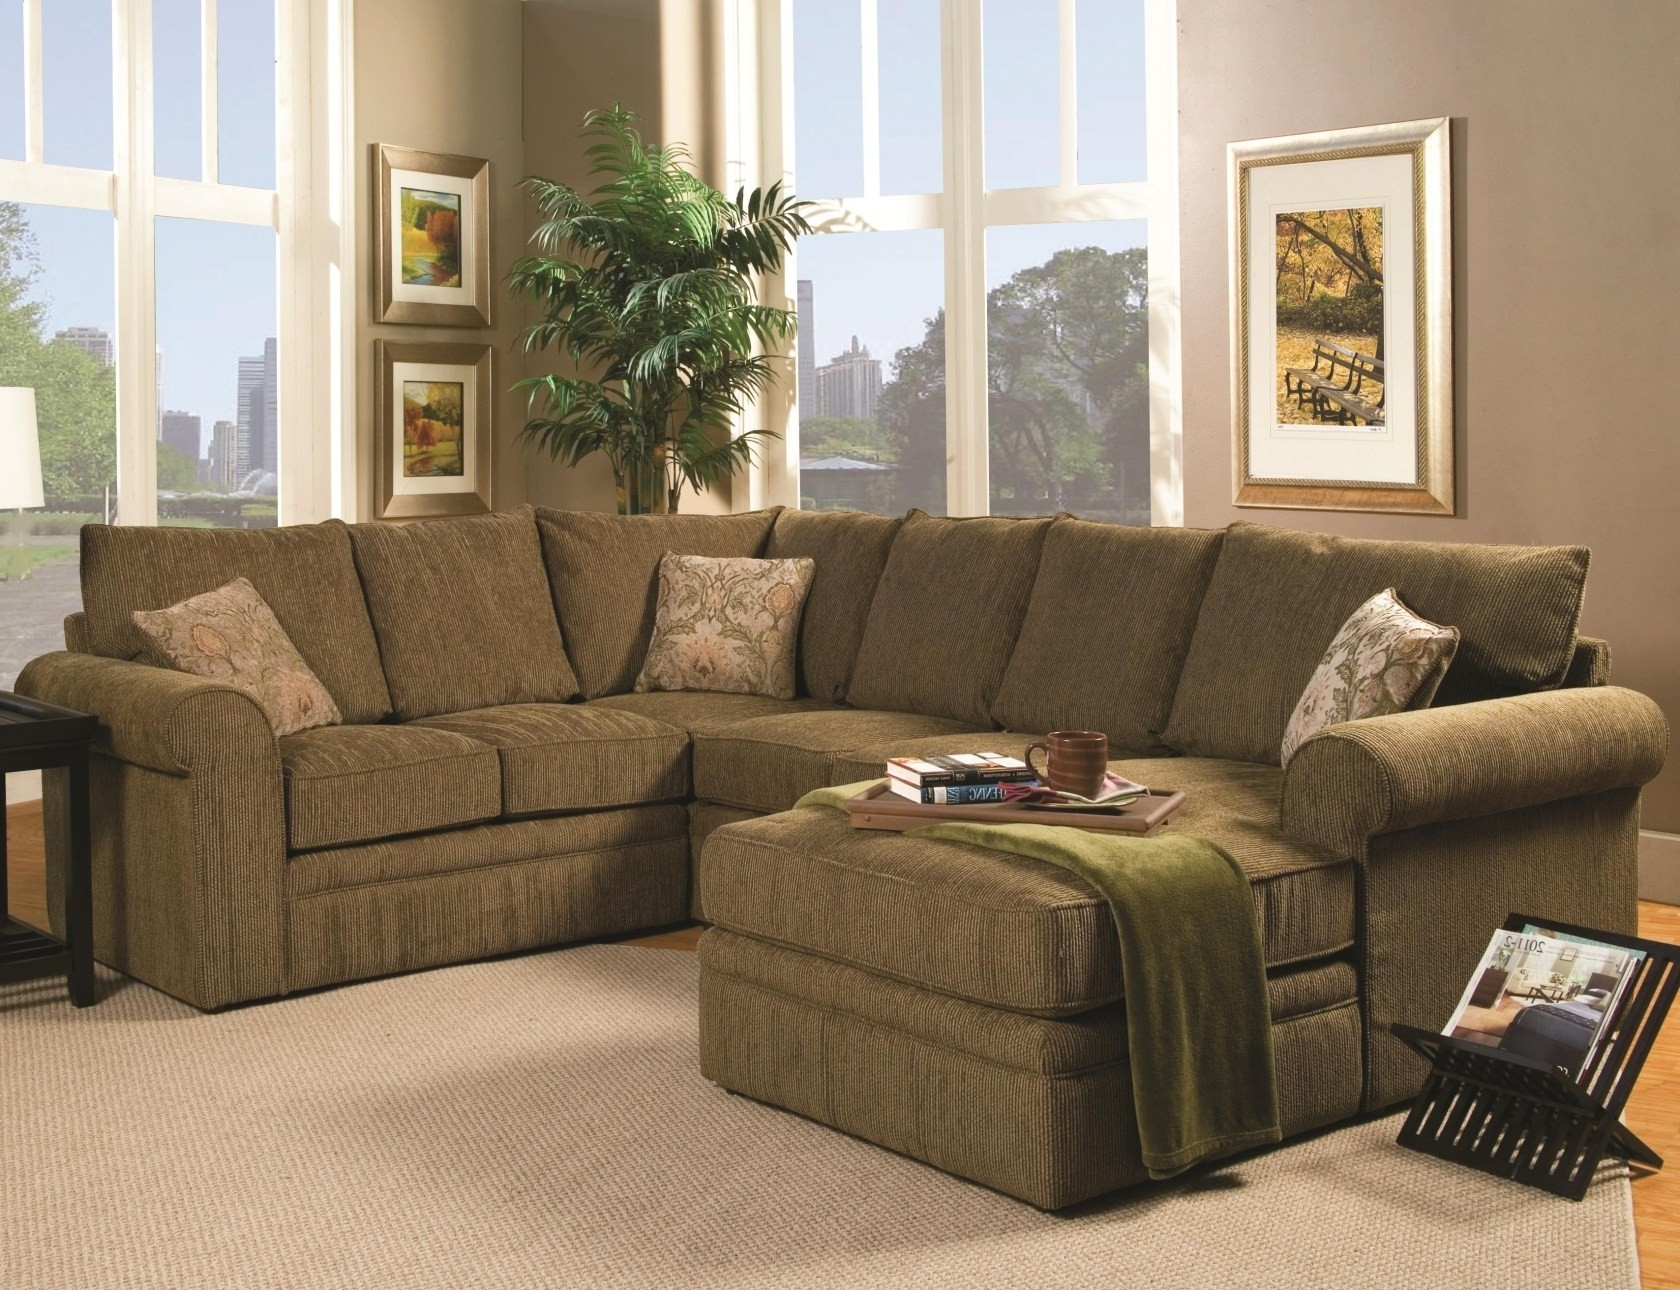 Most Current Modern Concept U Shaped Sectional Sofa With Image 22 Of 25 Within Modern U Shaped Sectional Sofas (View 8 of 15)